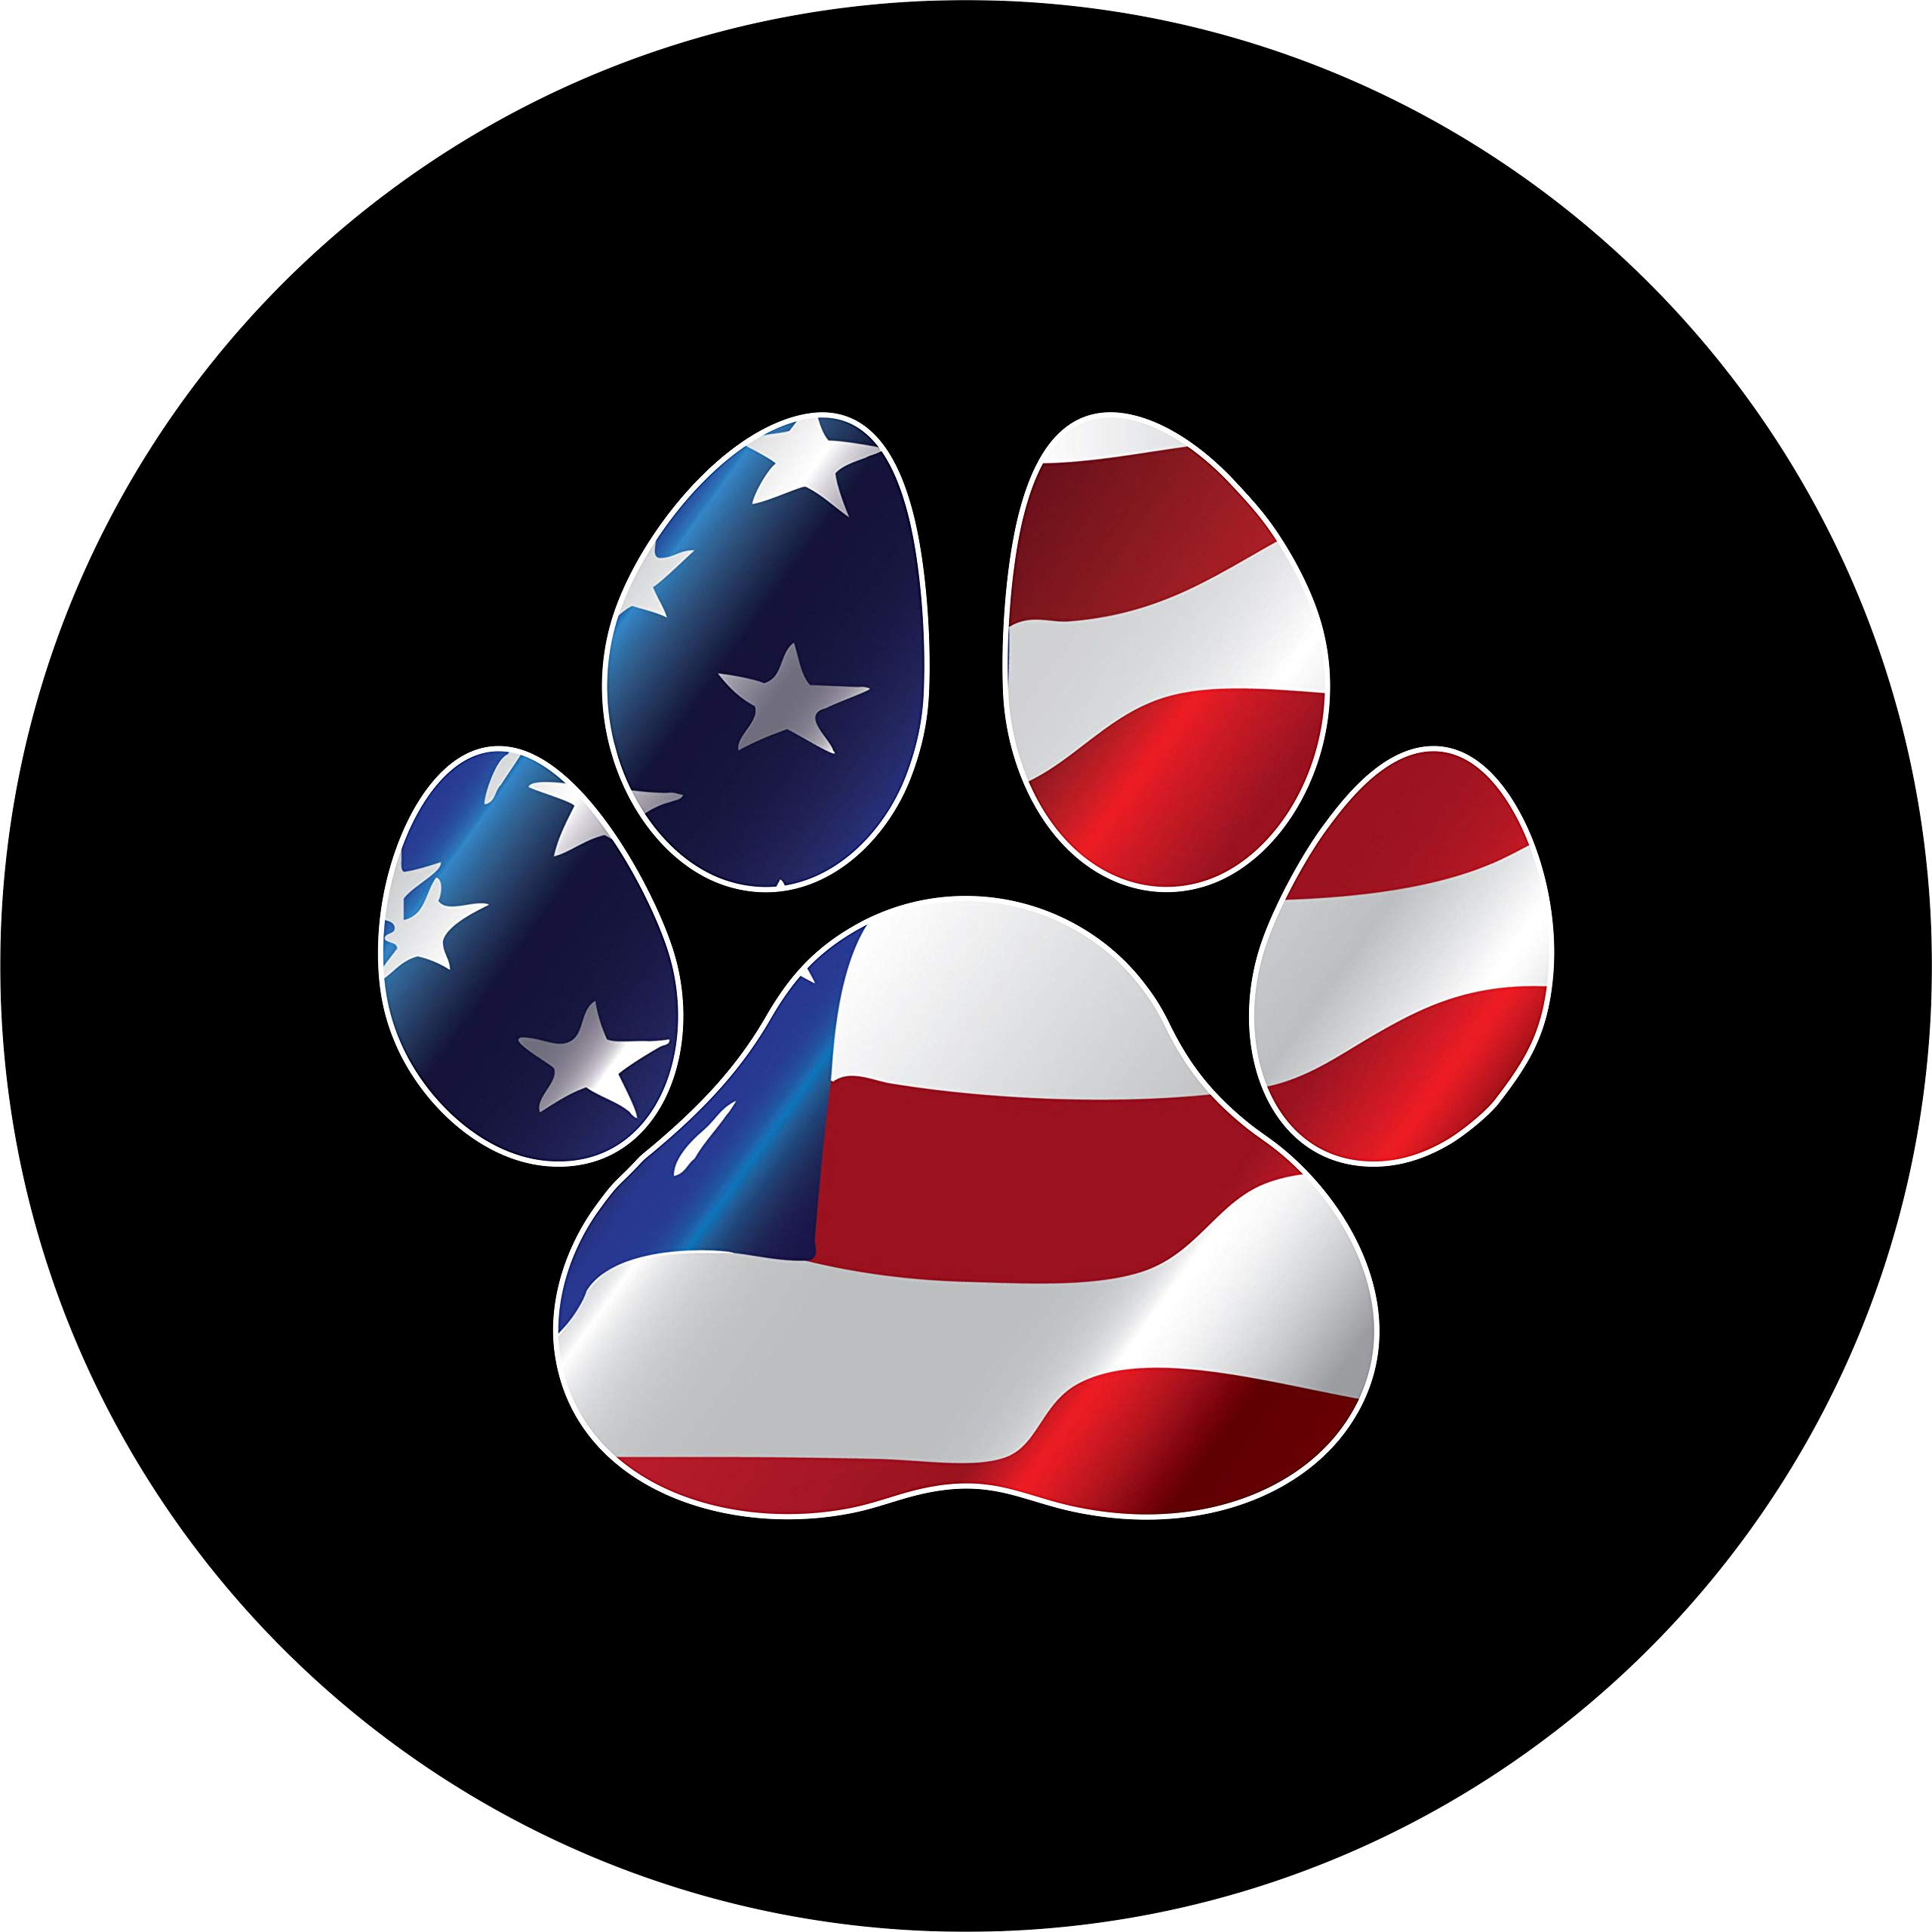 TIRE COVER CENTRAL Paws with US American Flag Spare Tire Cover for 255/70R18 fits Camper, Jeep, RV, Scamp, Trailer(Drop Down Size menu